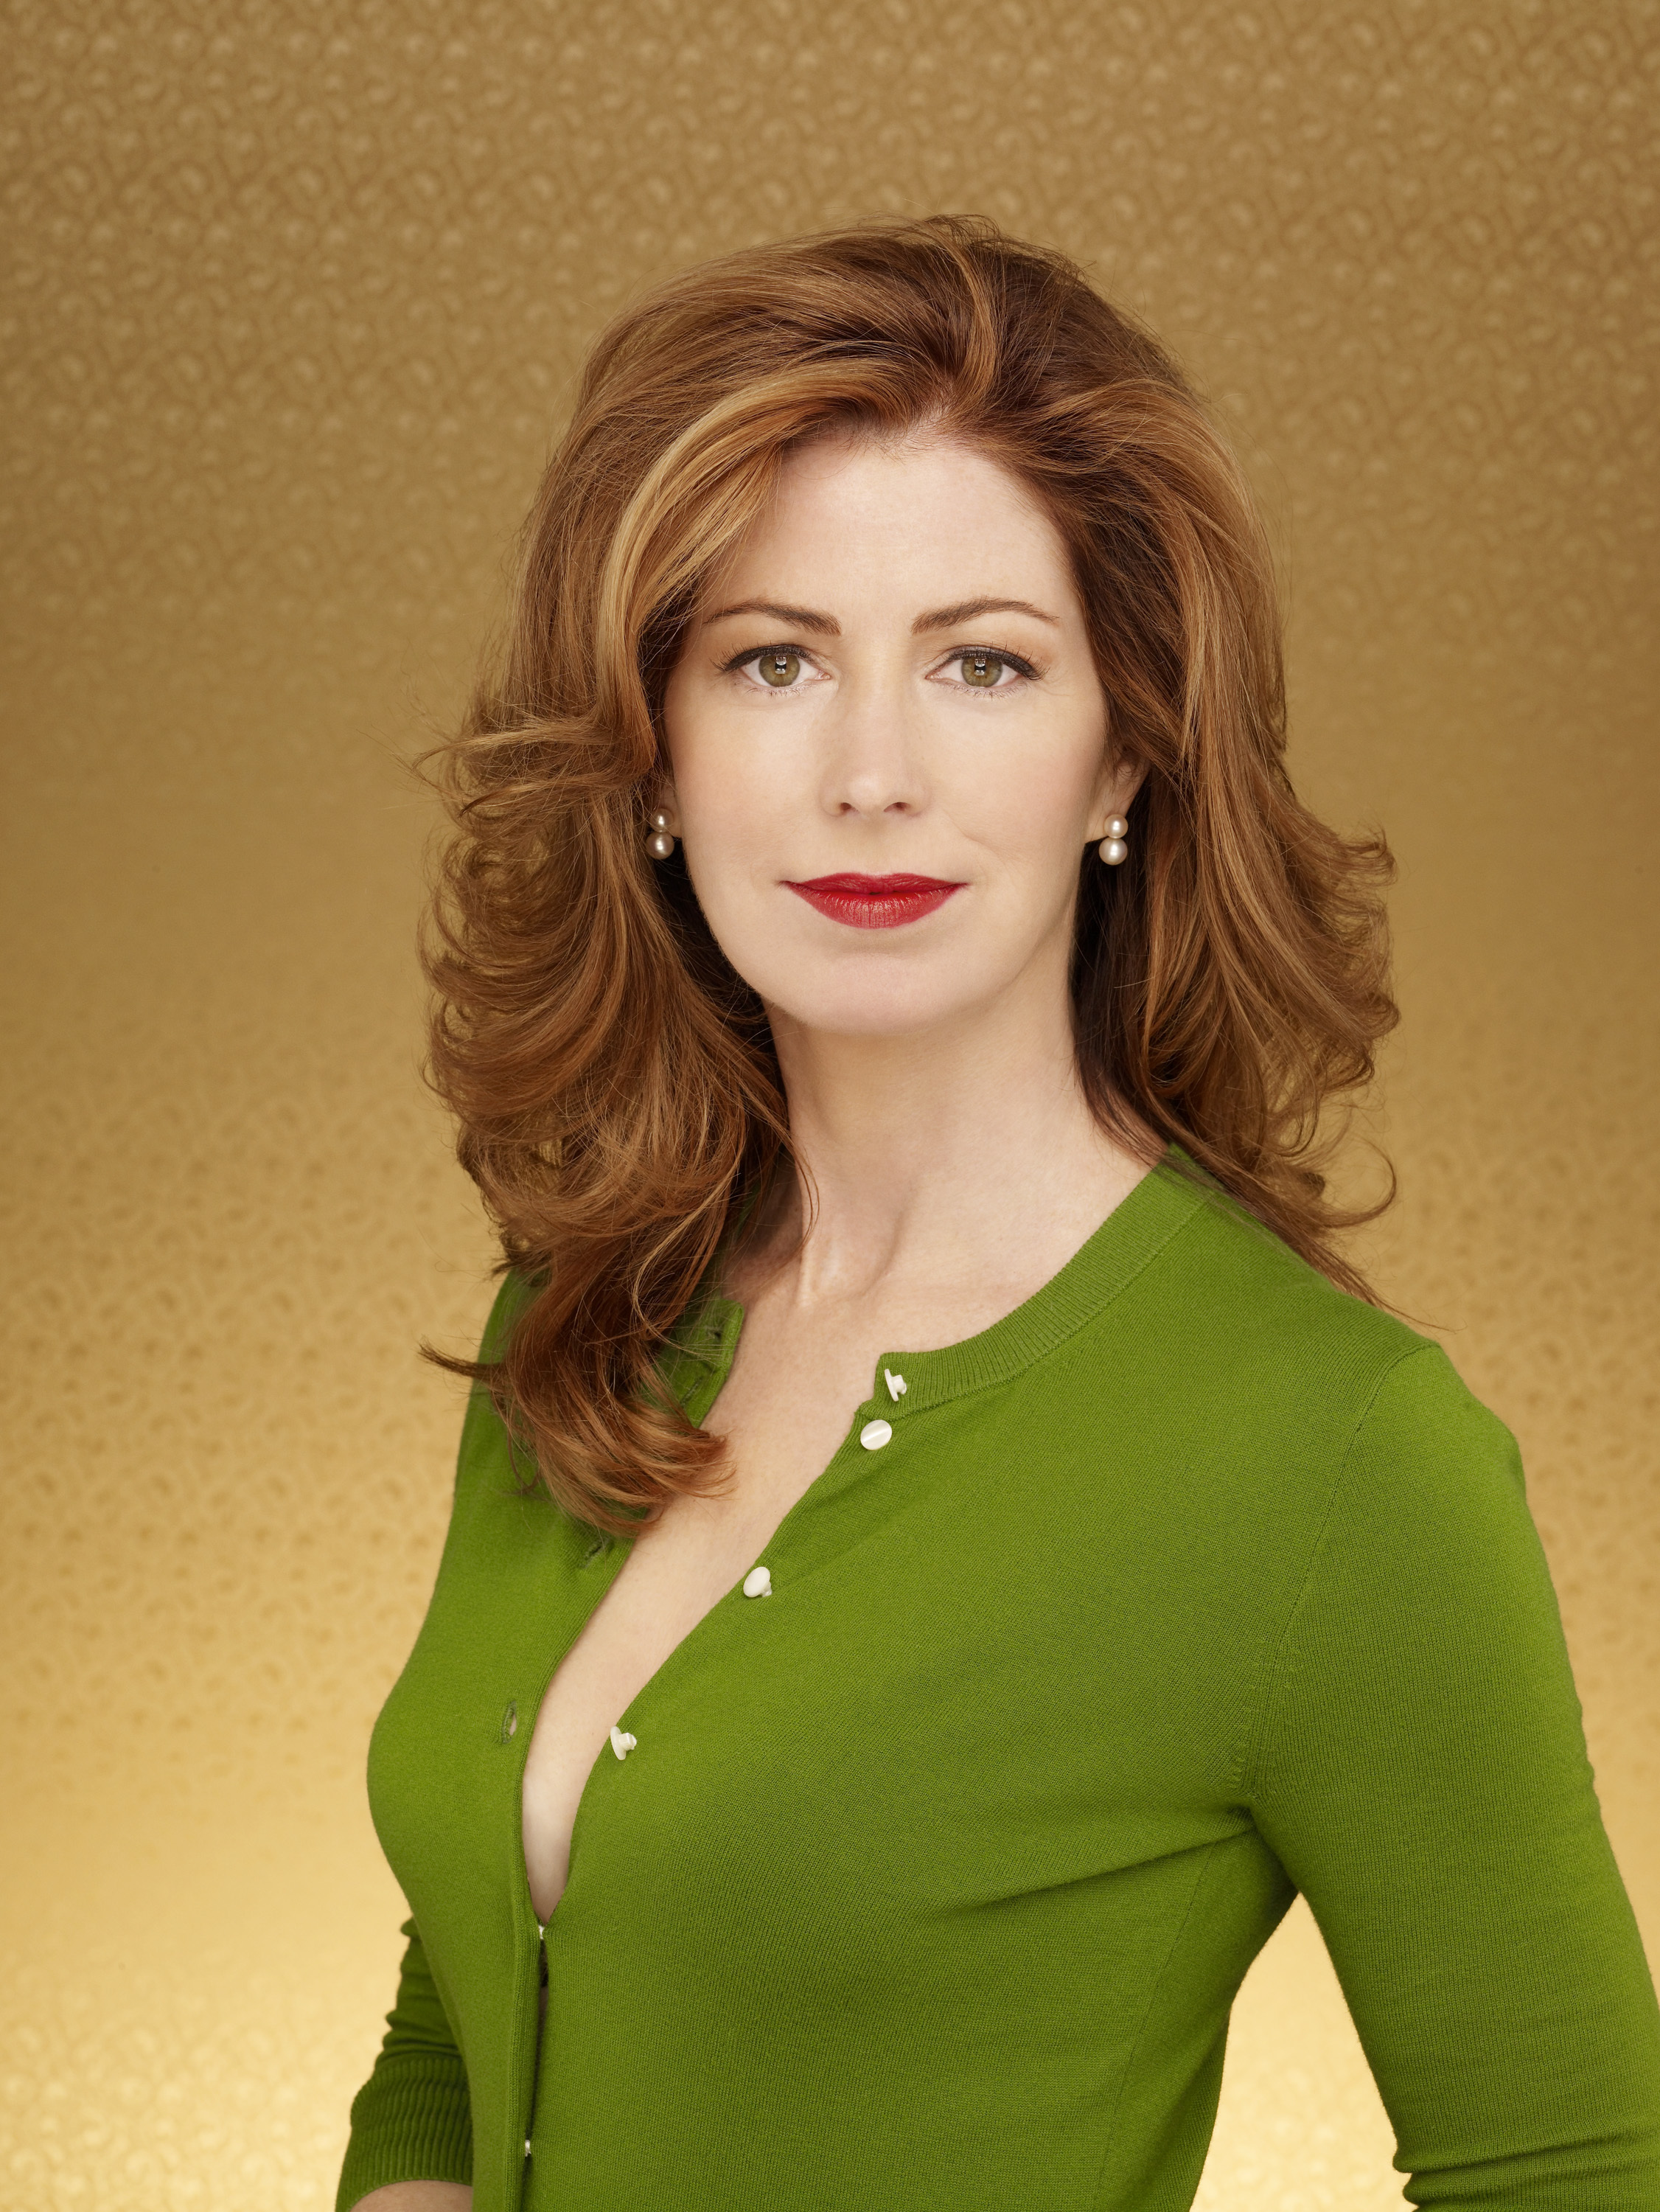 Dana Delany nude (98 foto), pics Pussy, Twitter, cleavage 2016